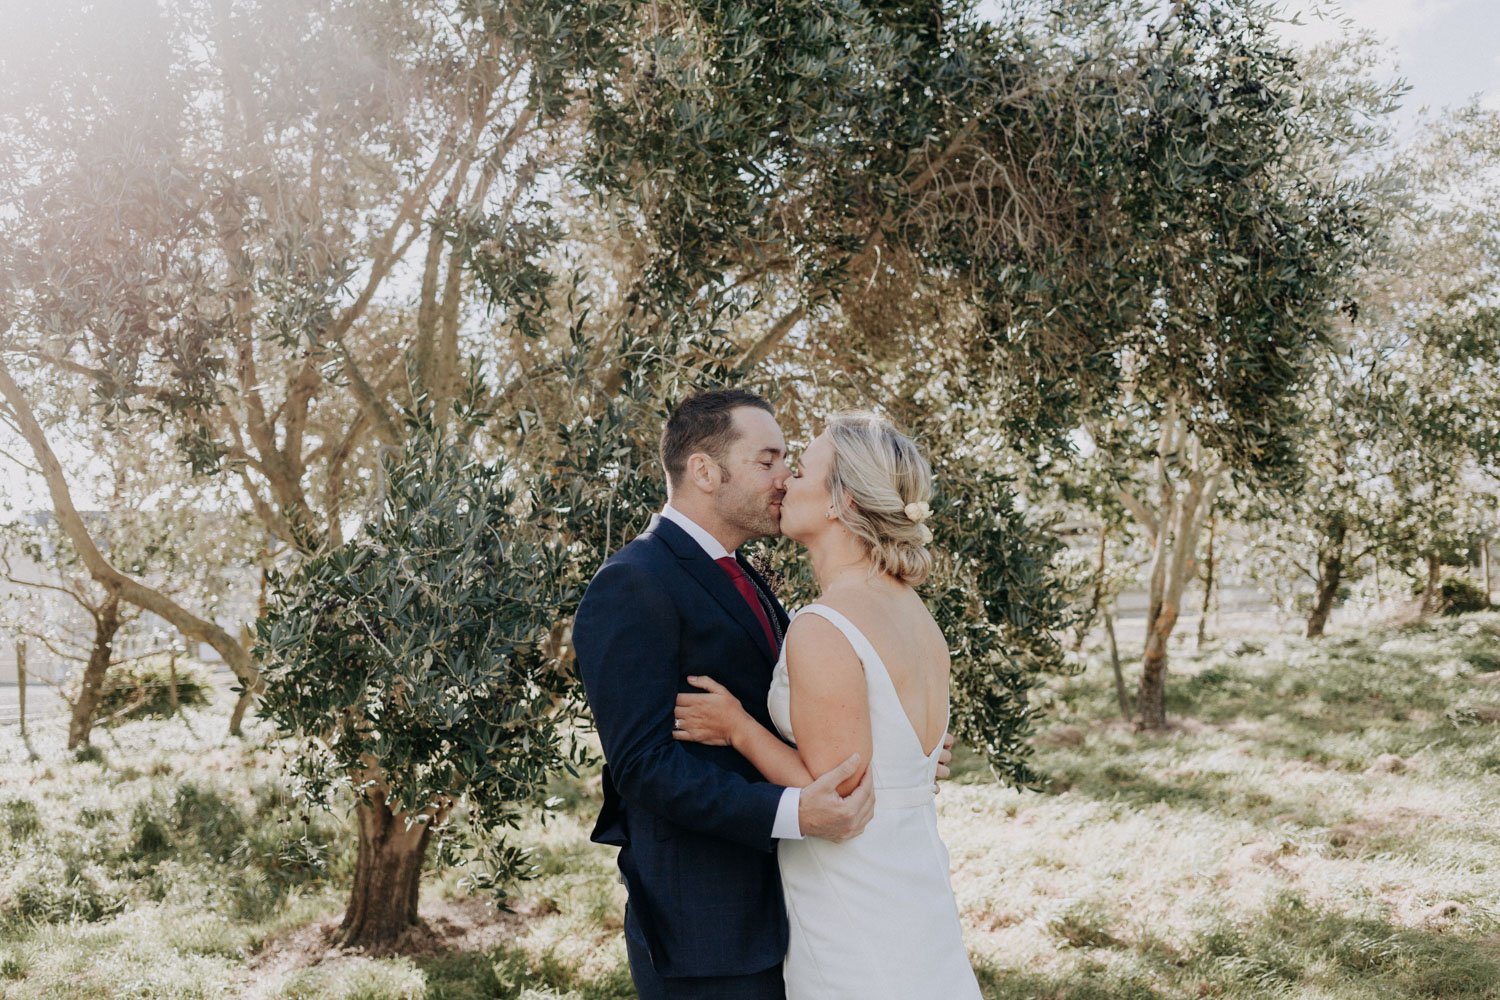 Wedding first look photos in olive grove